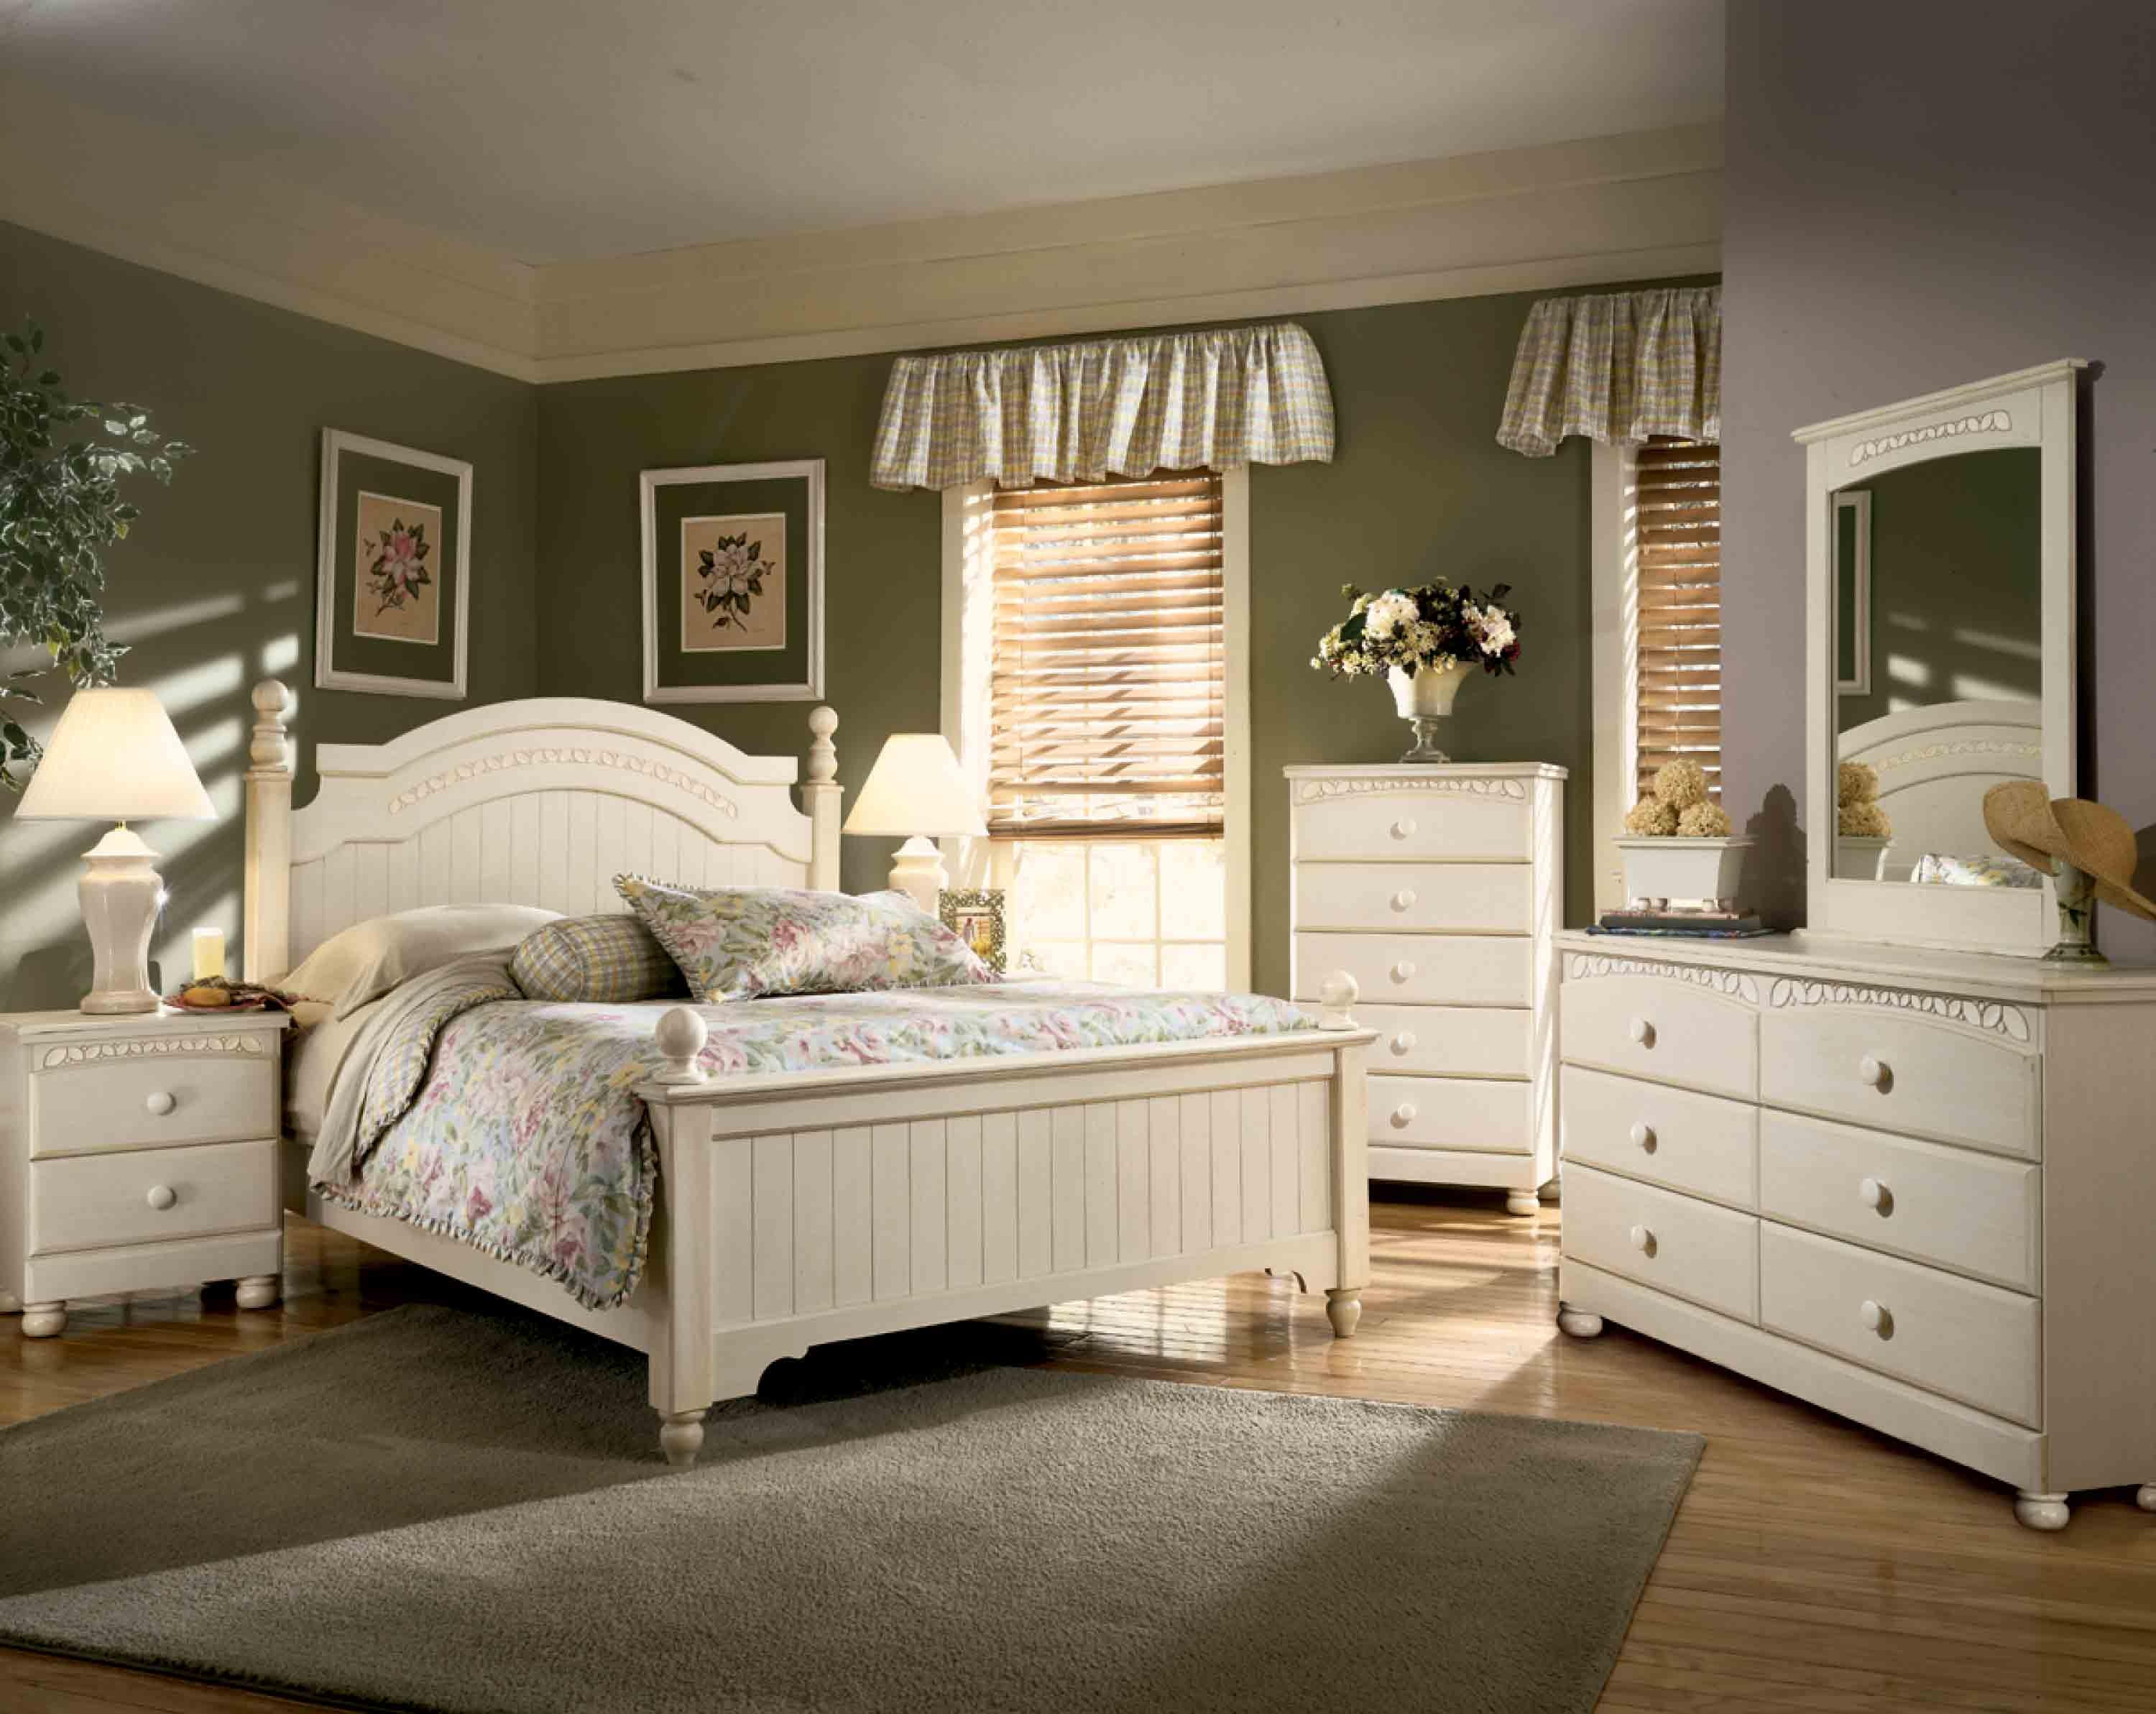 Furniture in brooklyn at Cottage retreat bedroom set